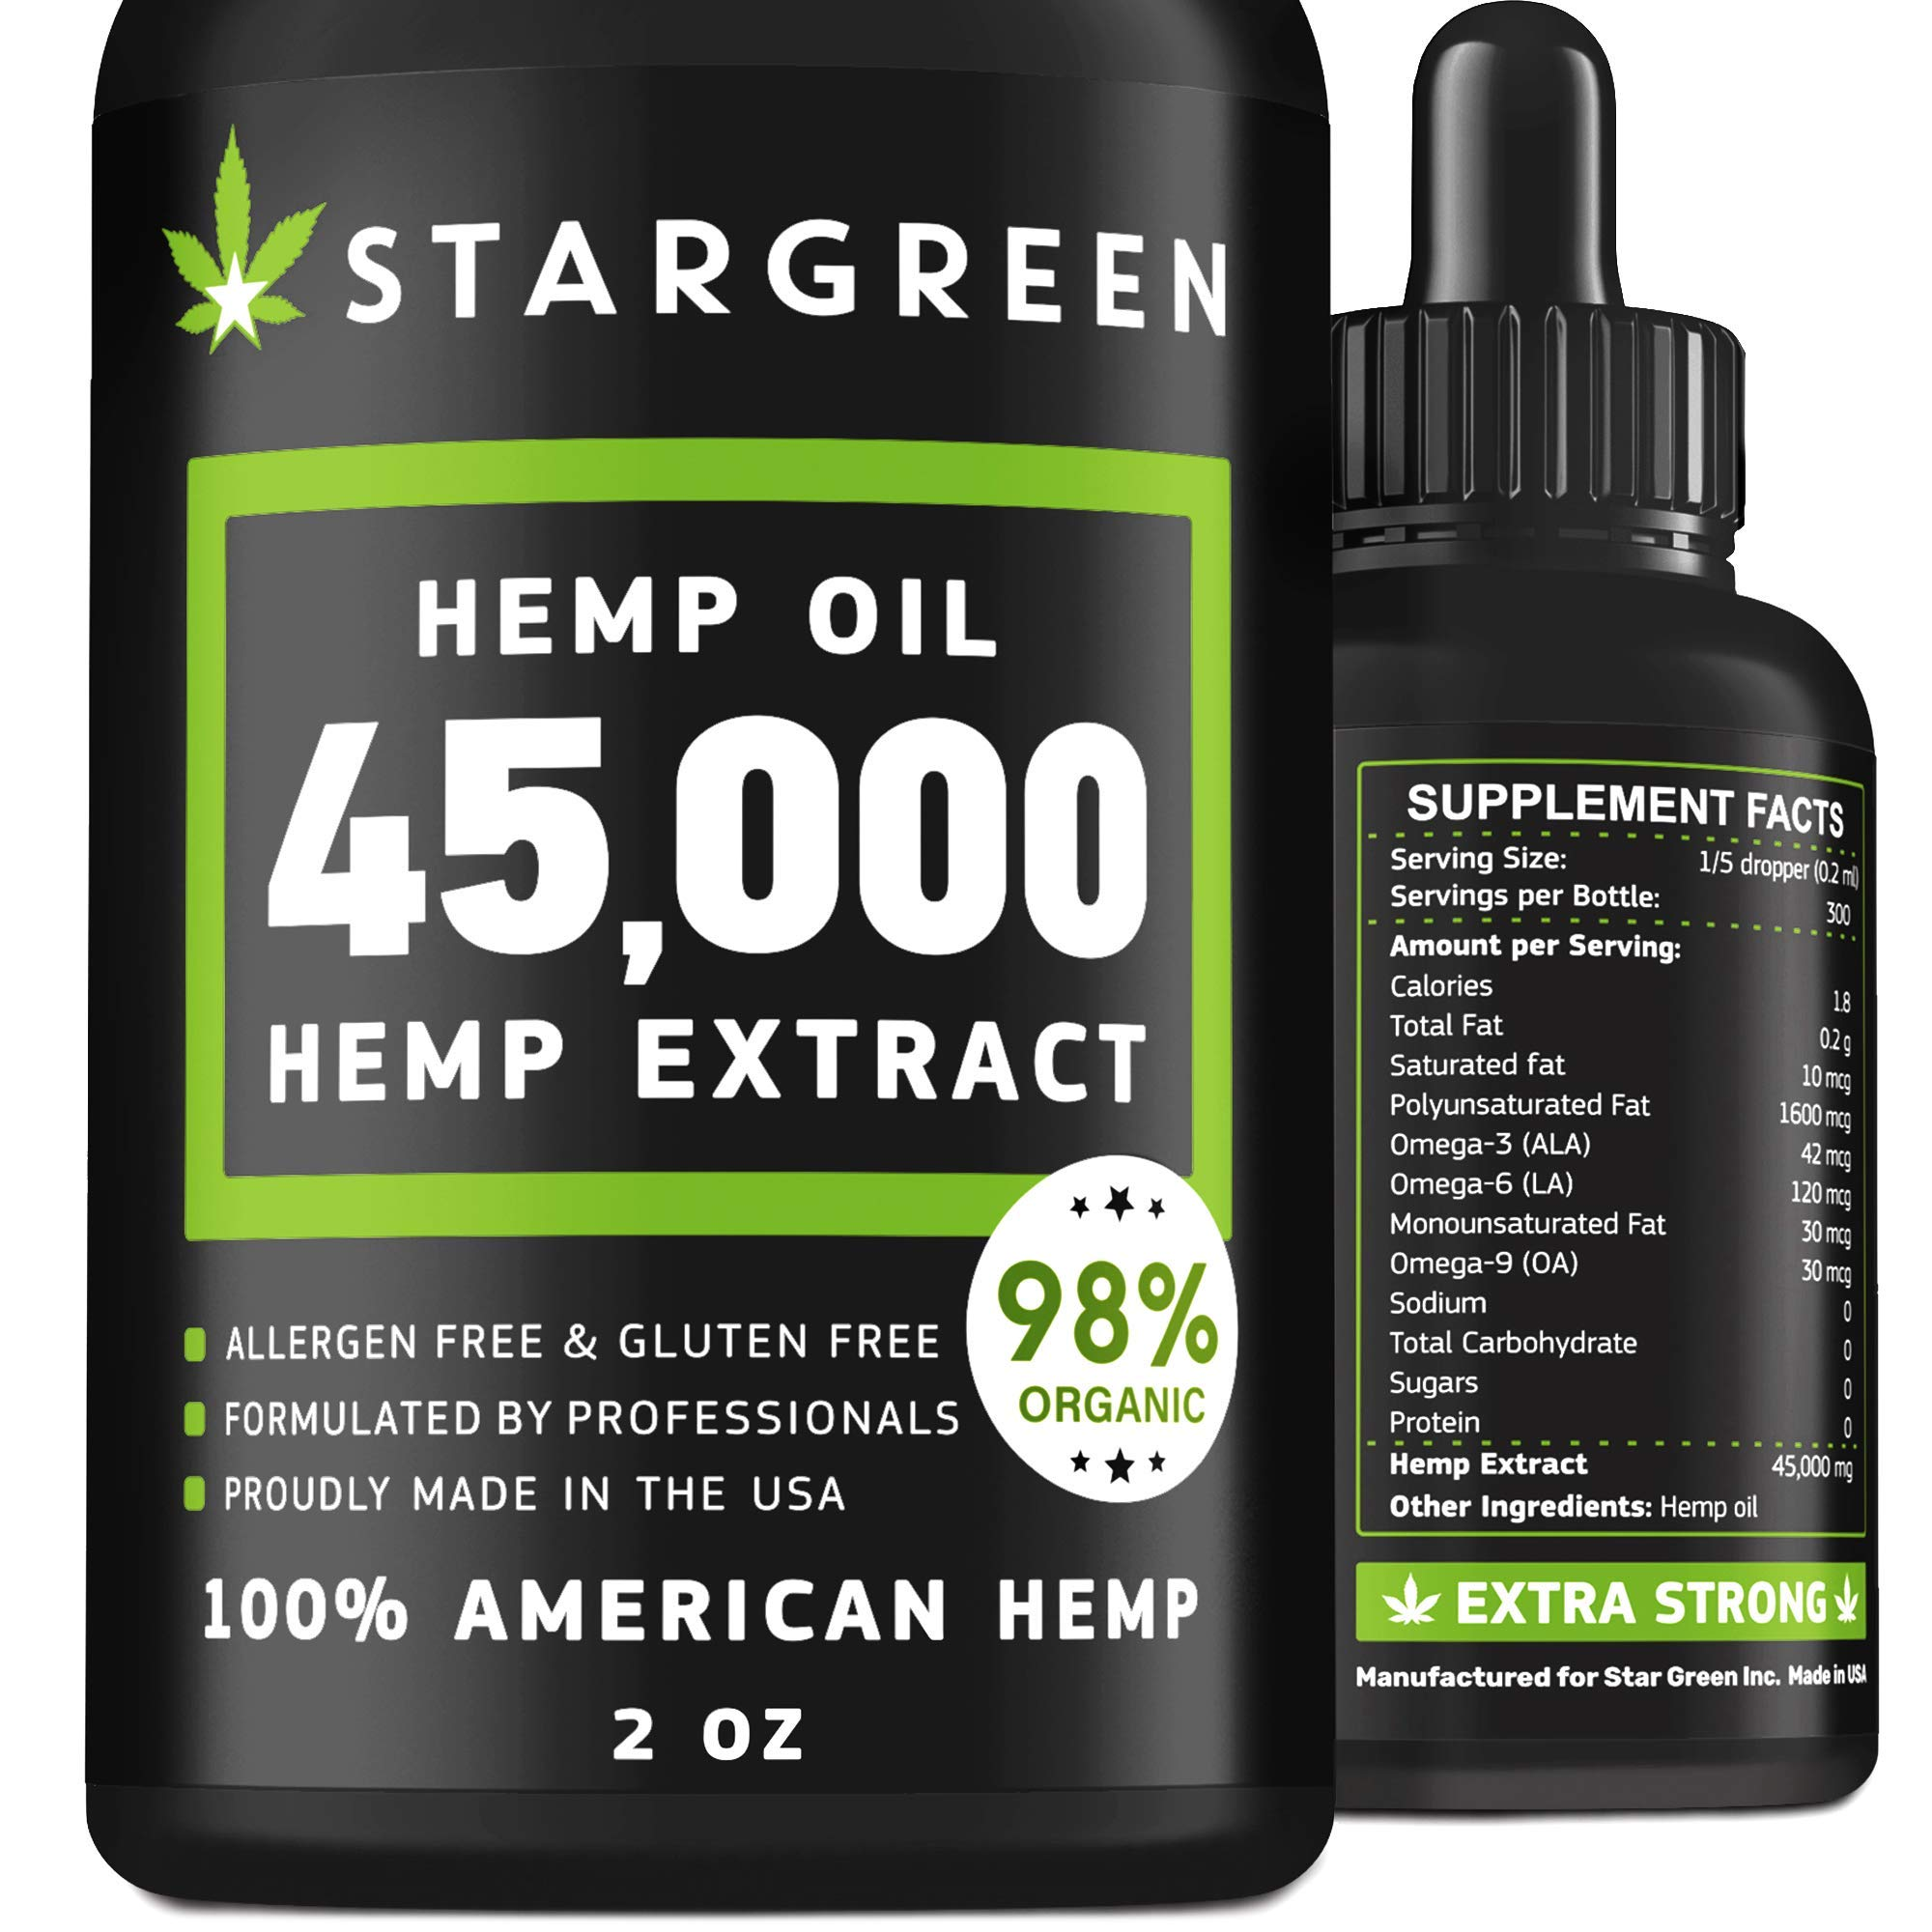 Hemp Oil Extract for Pain Relief - Anxiety Mood Stress Support - Updated Dosage 45000 mg - Vitamin D, E & Omega 3, 6, 9 - Organic Hemp Extract - Made in USA - Deep Restful Sleep - Immunity Boost